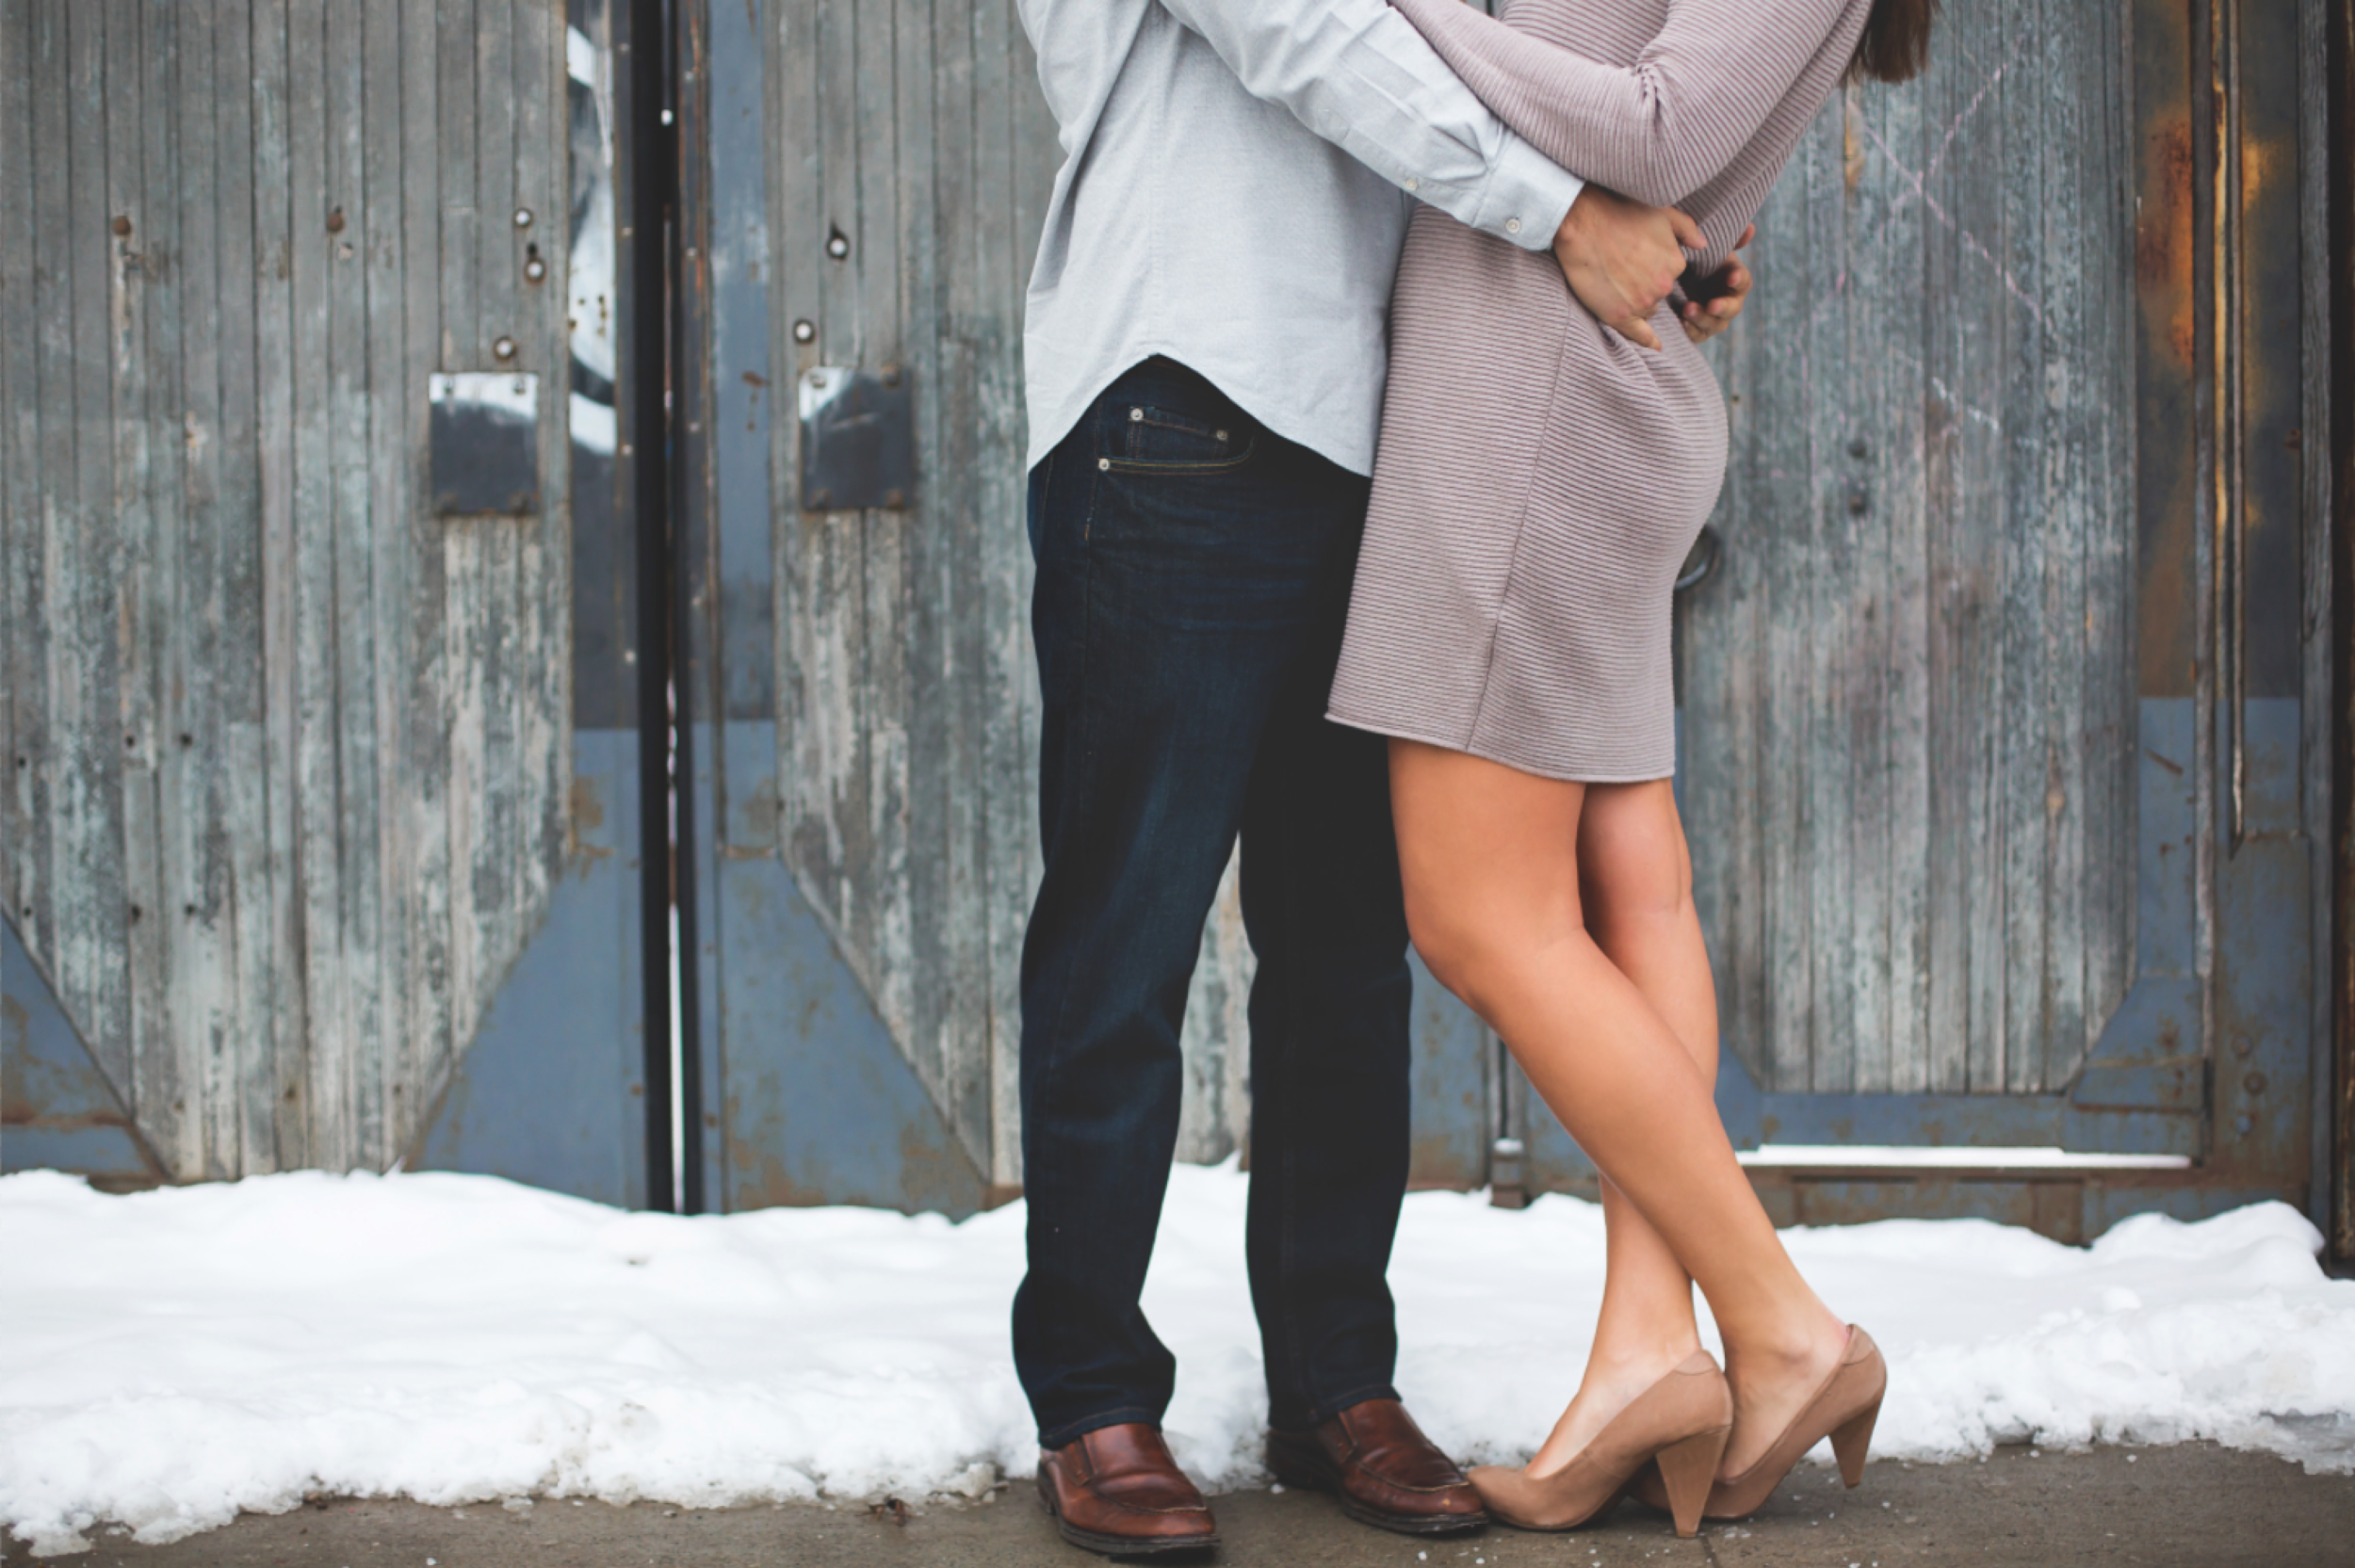 Engagement-Session-Downtown-Toronto-Hamilton-Burlington-Oakville-Niagara-Wedding-Photographer-Engaged-Photography-Artscape-Wynchwood-Barn-Urban-HamOnt-Engaged-Moments-by-Lauren-Photo-Image-17.png